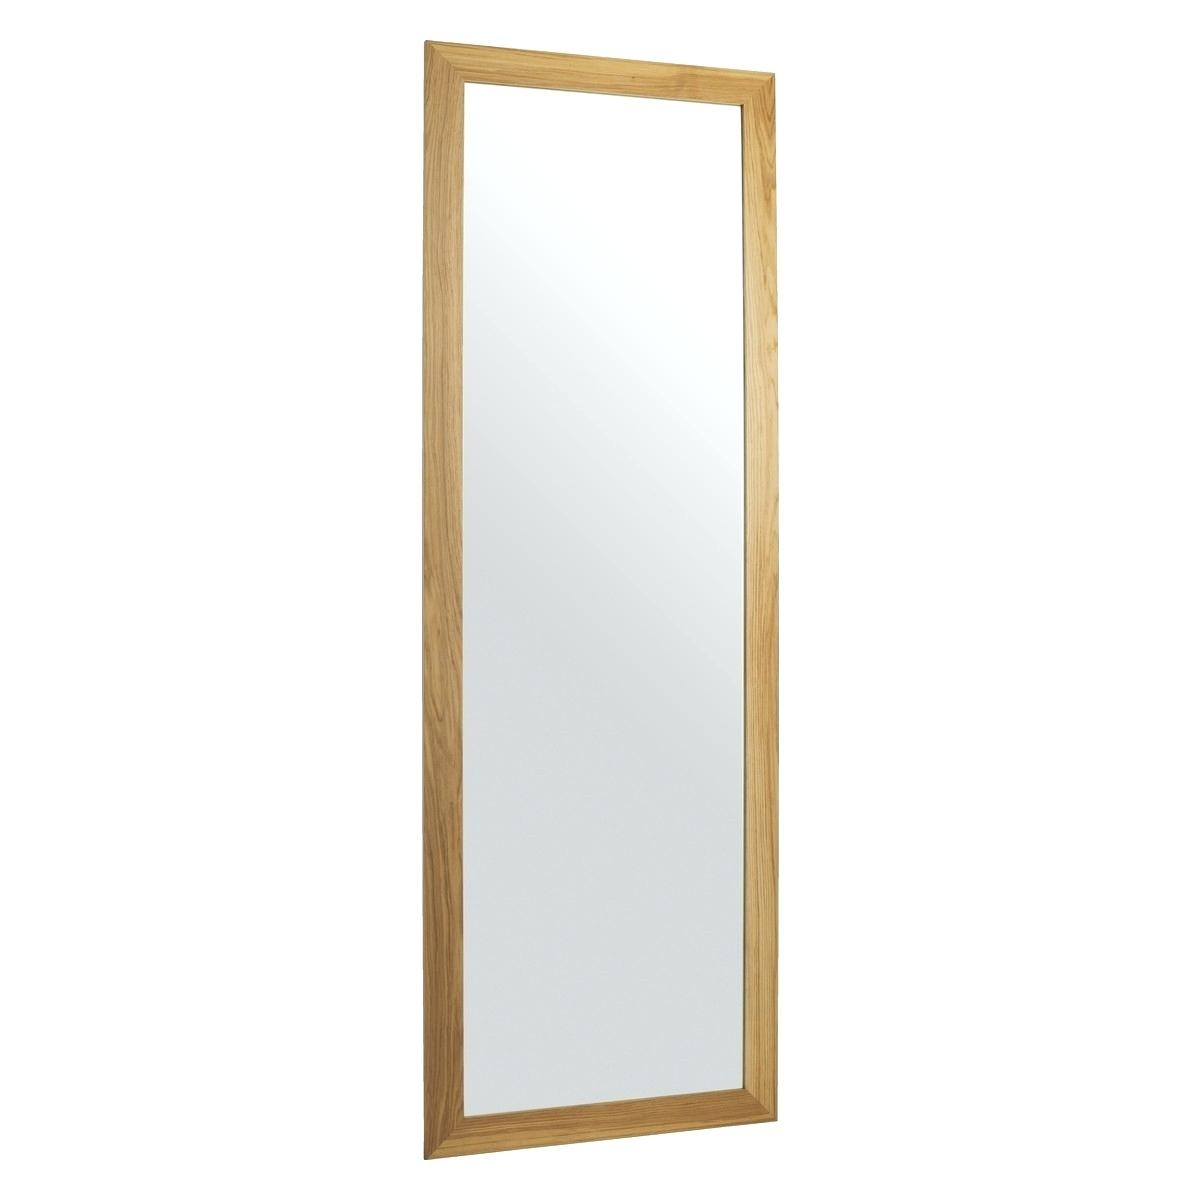 Long Wall Mirror Shopwiz With Regard To Long Mirrors For Sale (Image 10 of 15)